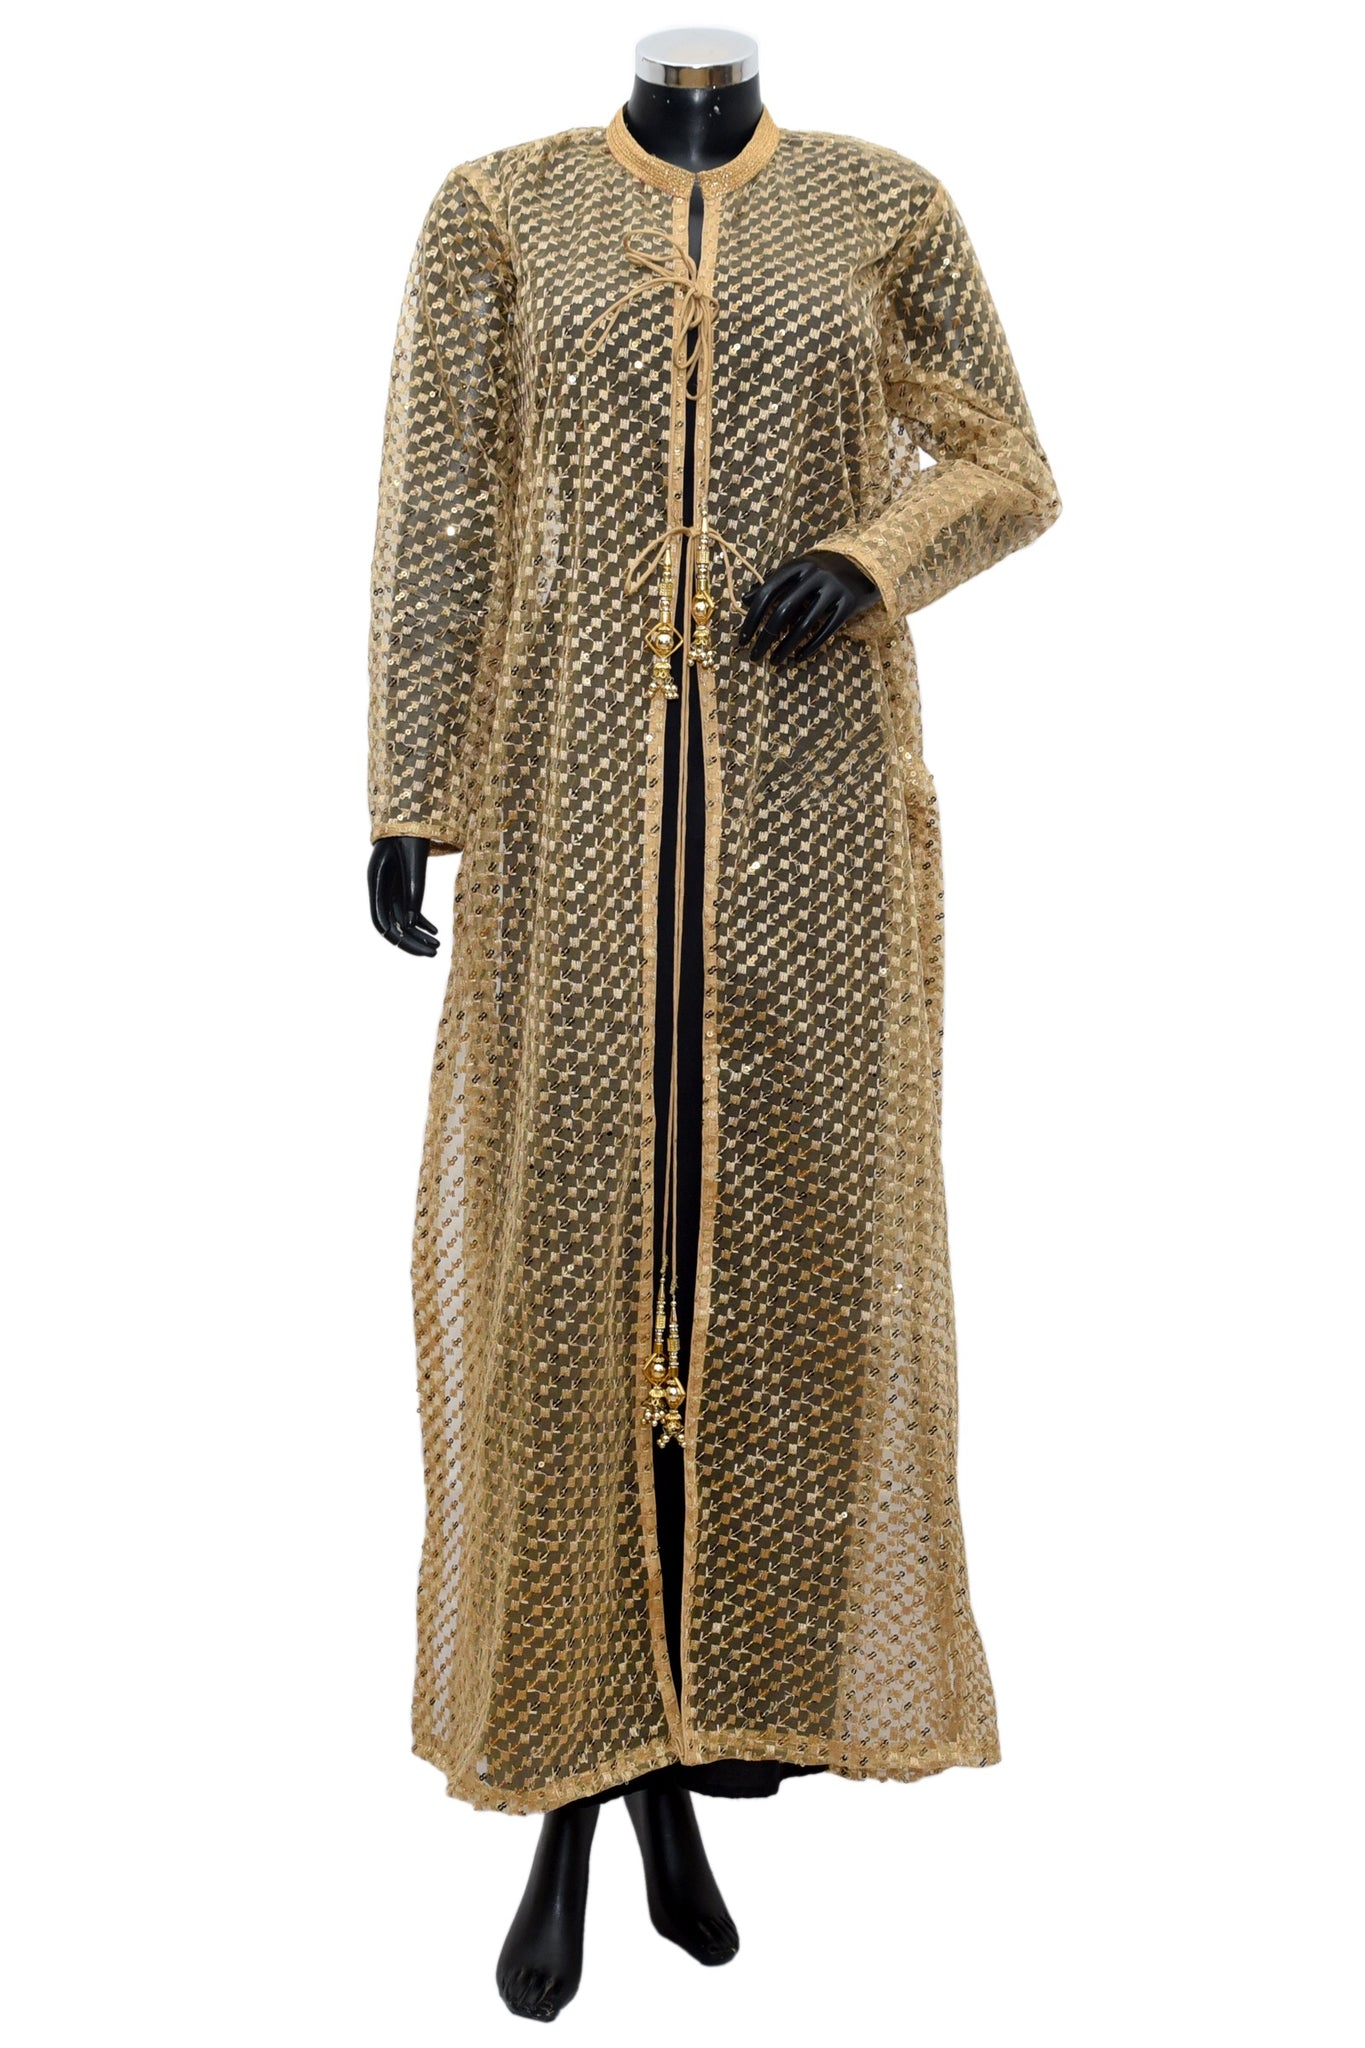 A long net jacket dress #fdn976-481